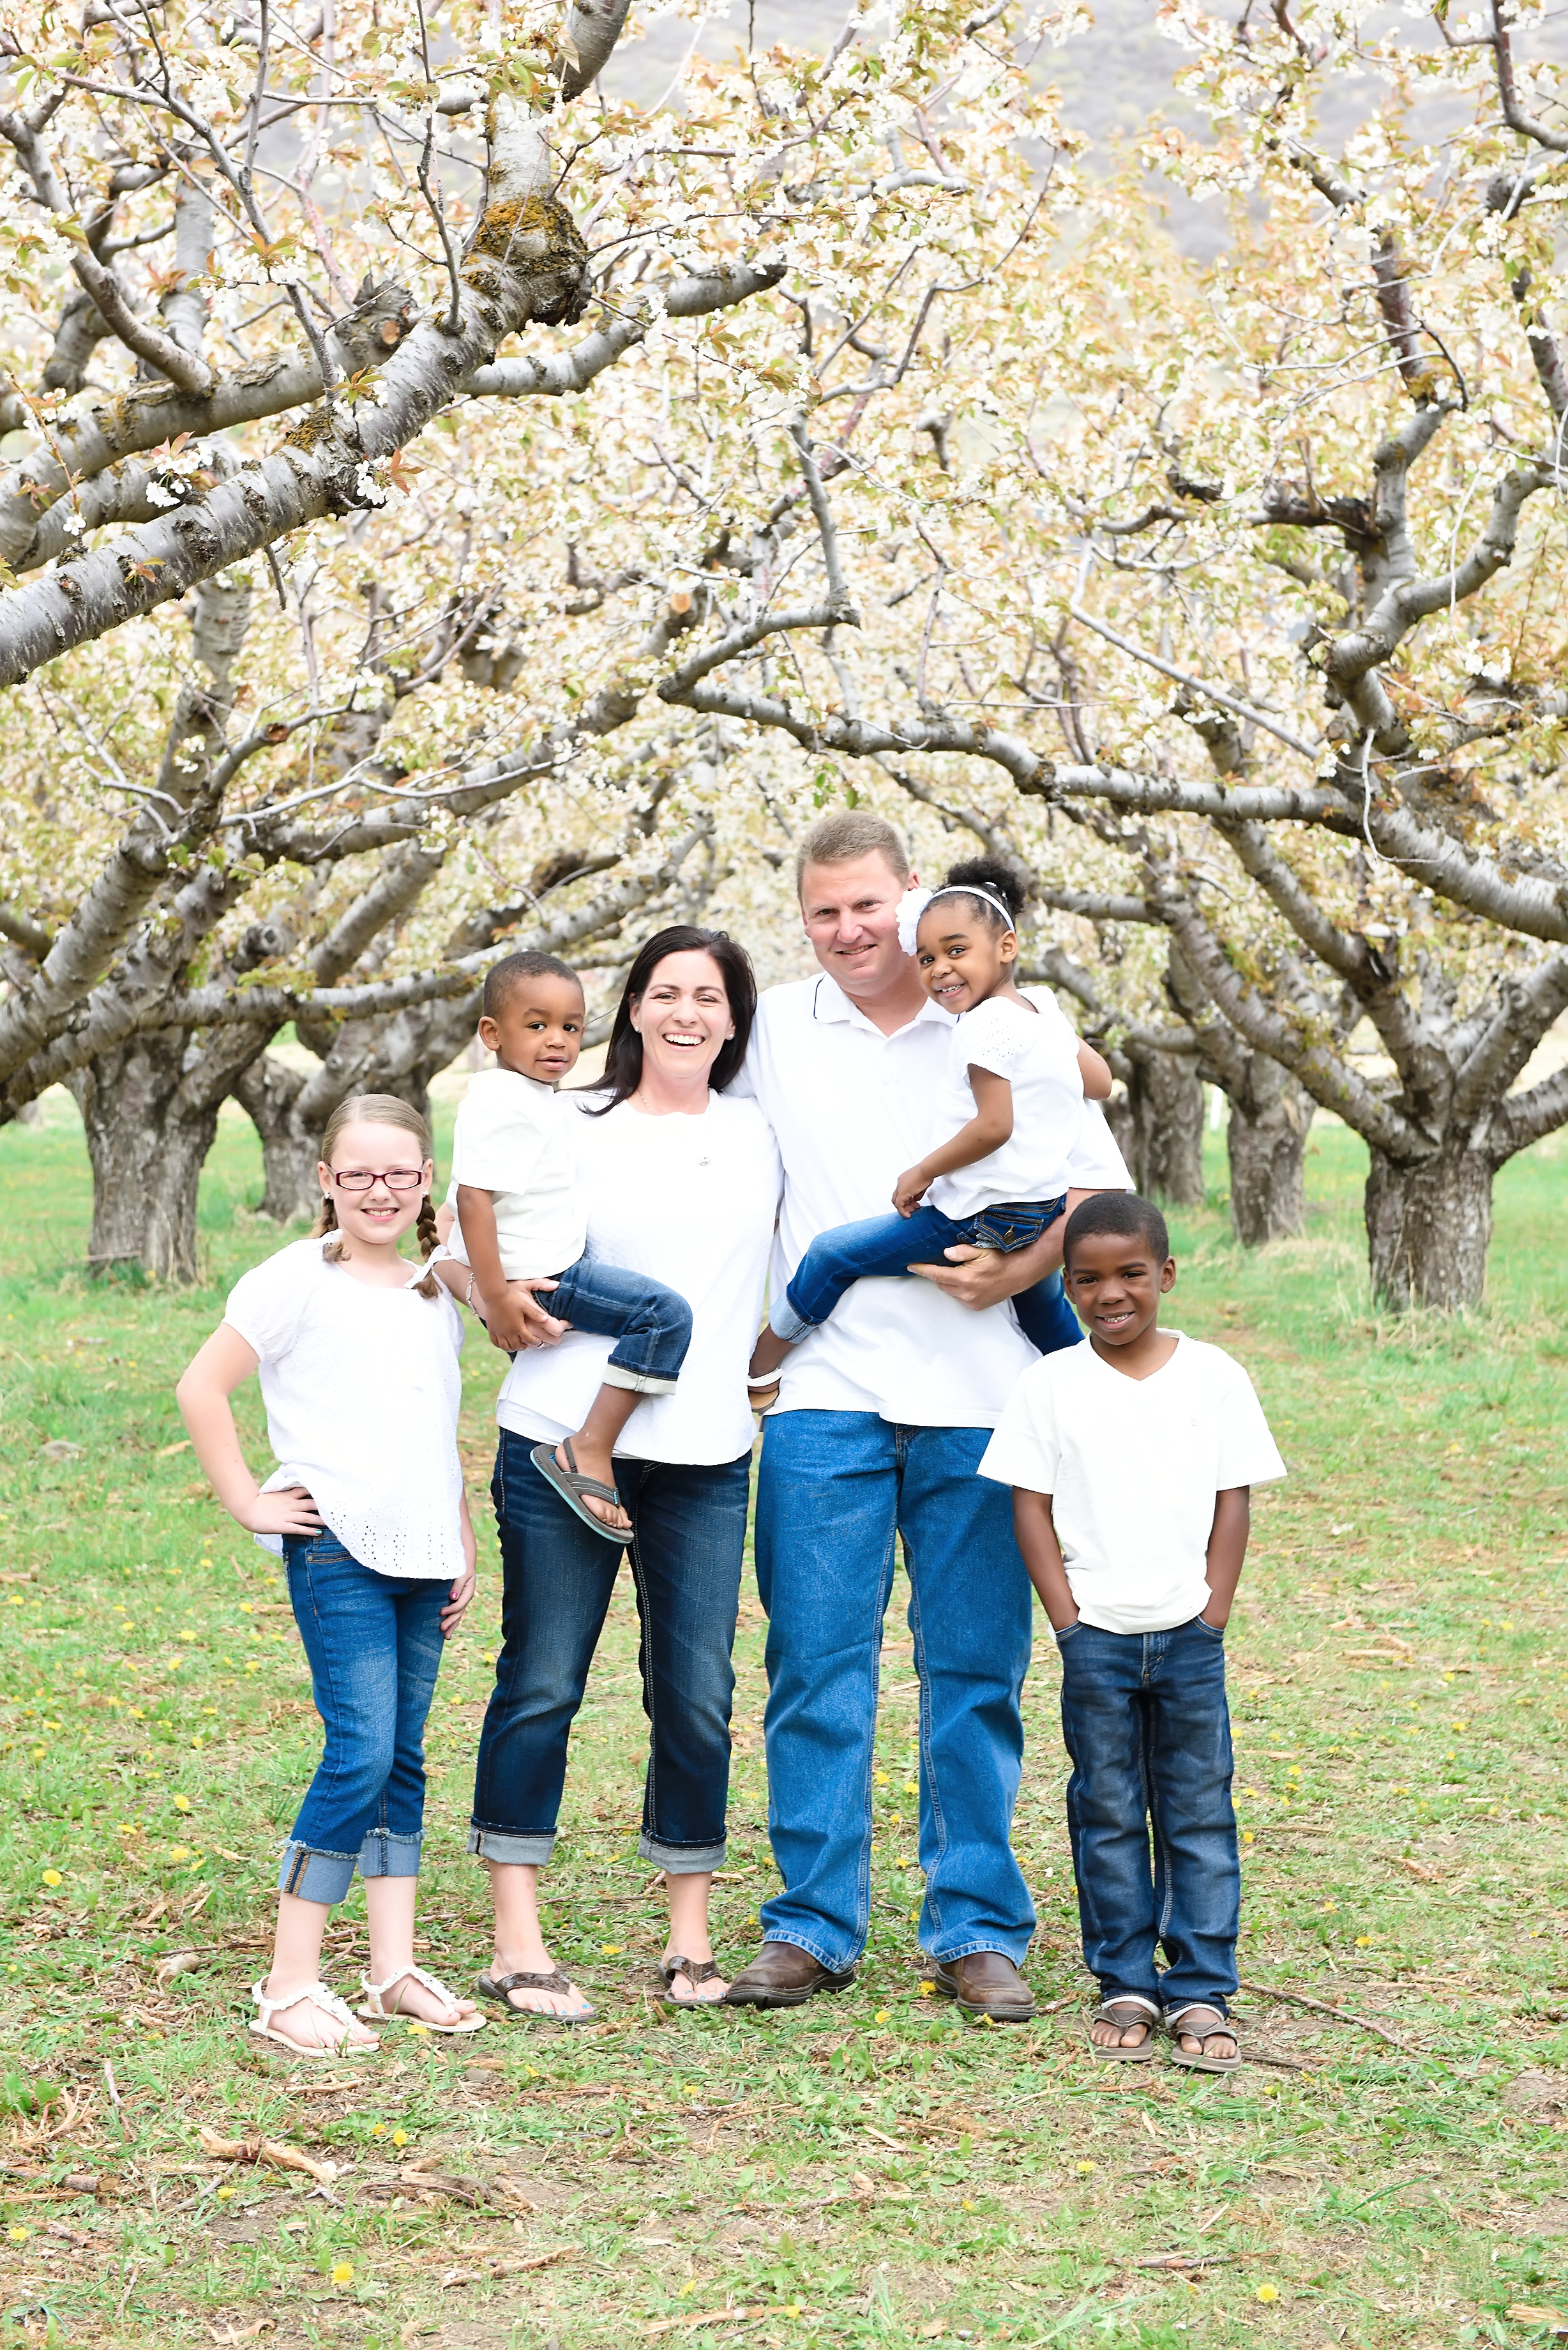 From left to right: Lauryn (10), Keaton (4), Lisa (43), Aaron (45), Keily (4), Payton (8)